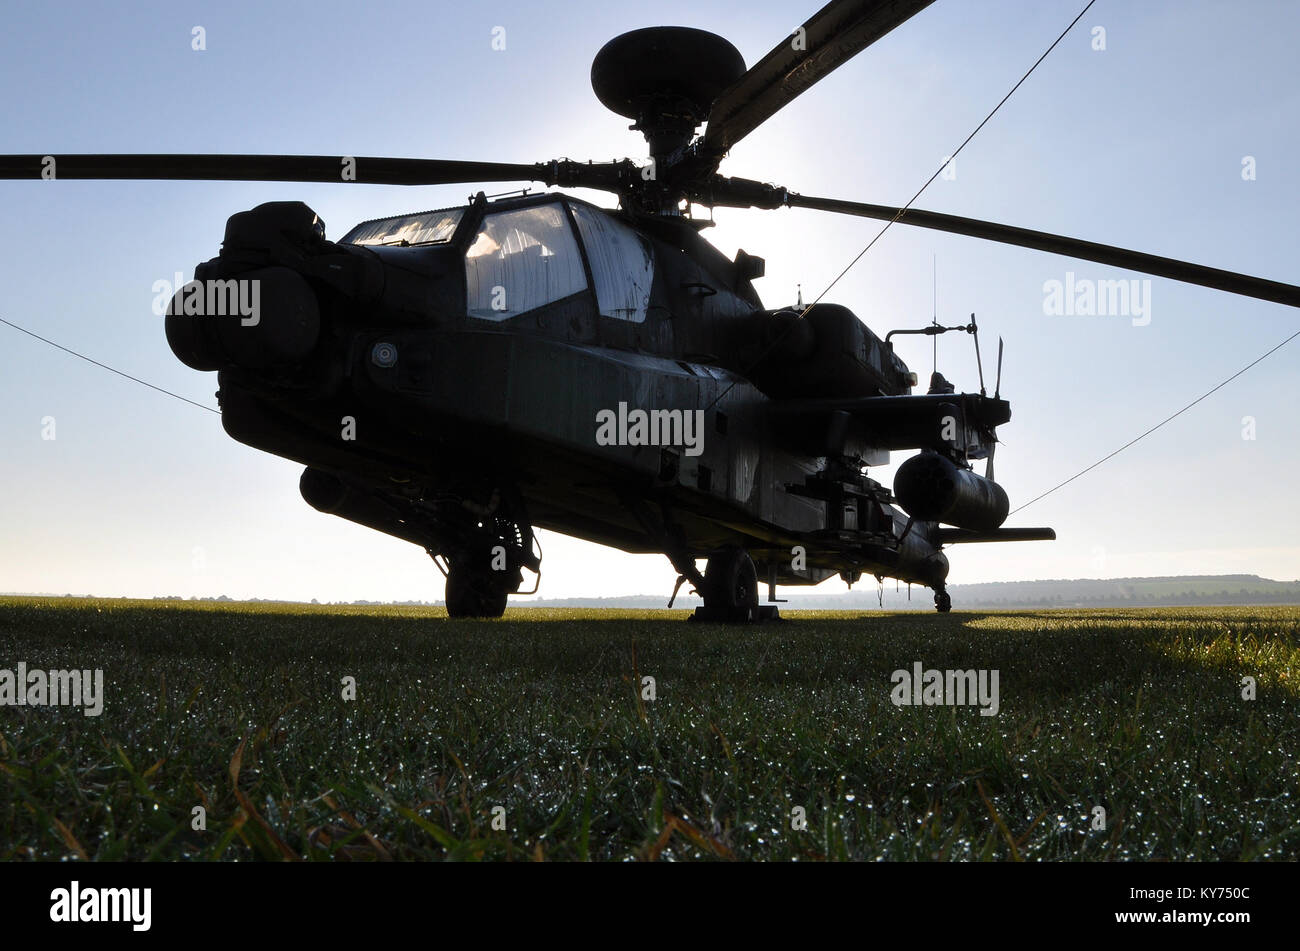 British Army Apache gunship sitting on grass with dew early in the morning. Westland AH-64 Longbow Apache. Space - Stock Image